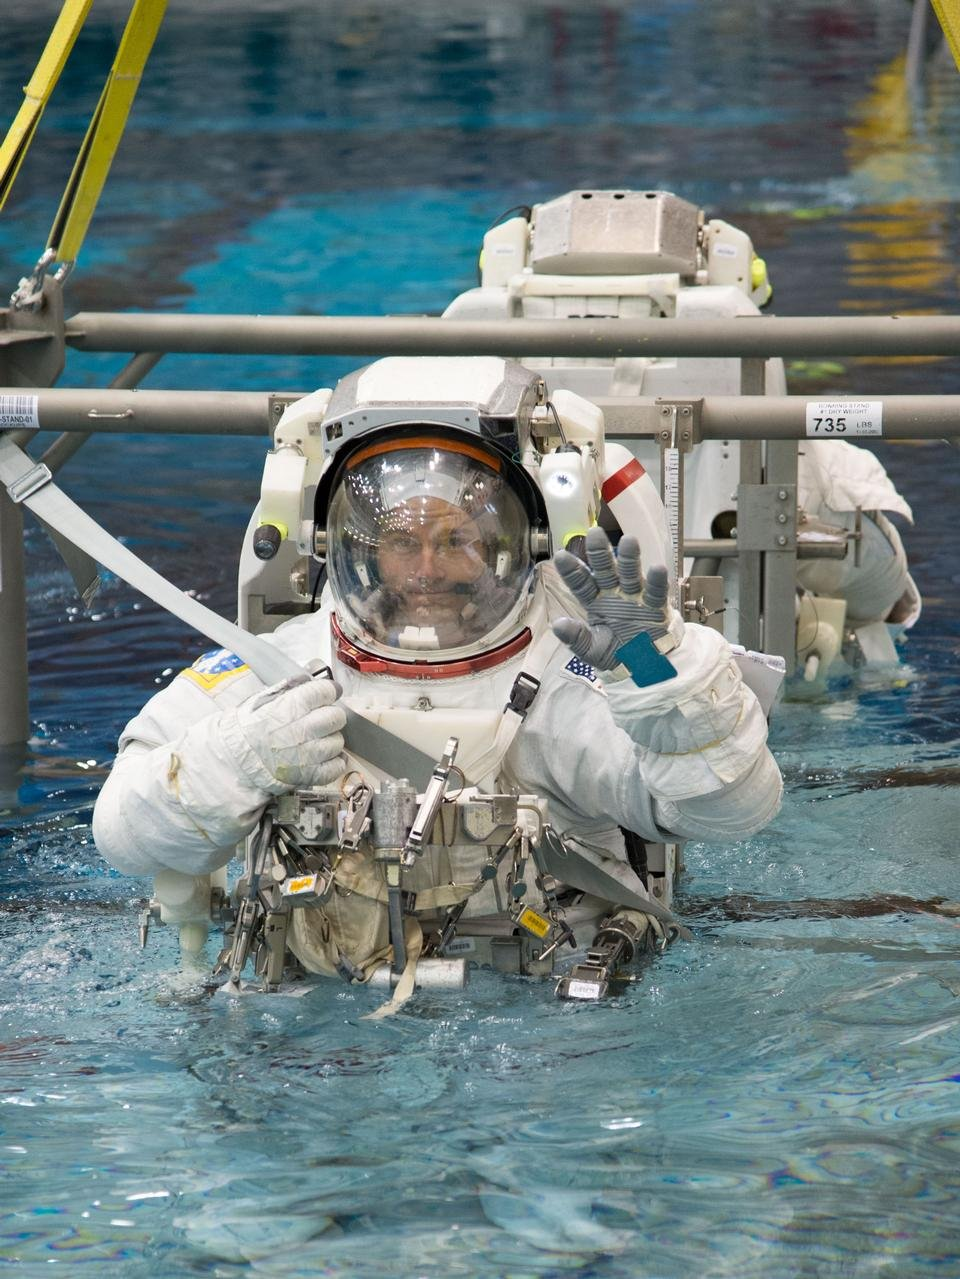 Spacewalk-Training-at-the-Neutral-Buoyancy-Laboratory-051714DB5A8E5136